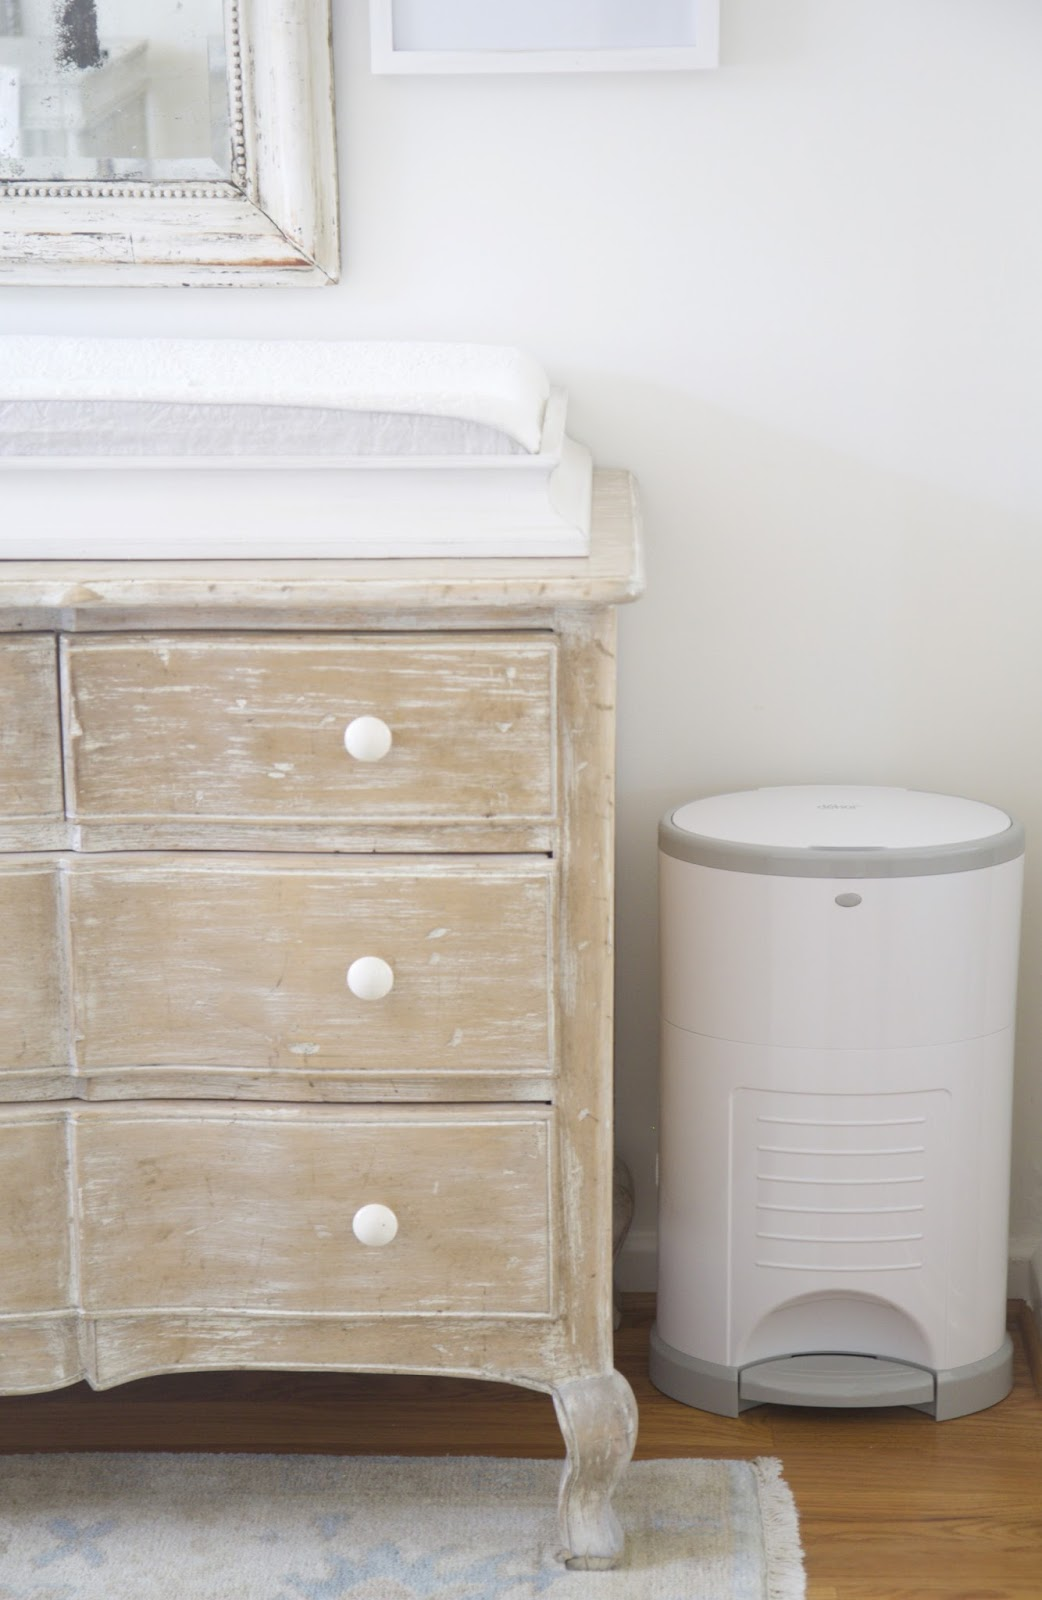 Changing Table Topper By Restoration Hardware; Diaper Dekor Trash Bin; Baby  Tools In The